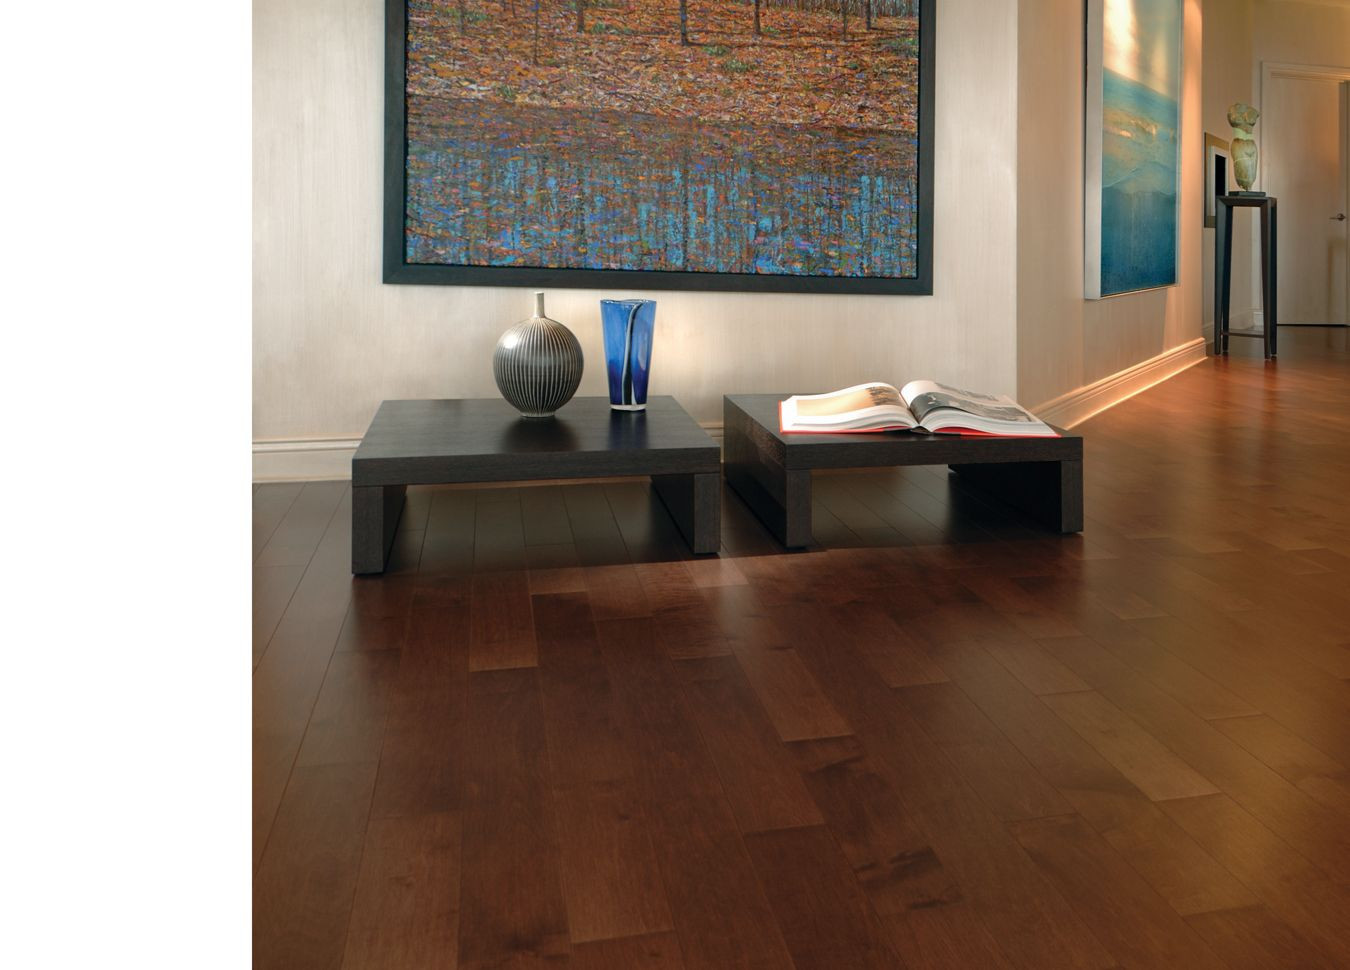 Mirage Hardwood Flooring Prices Canada Of Subha Muthukrishnan Subham6 On Pinterest Inside 6141fd34842b1bfa9f4861ef5367837a